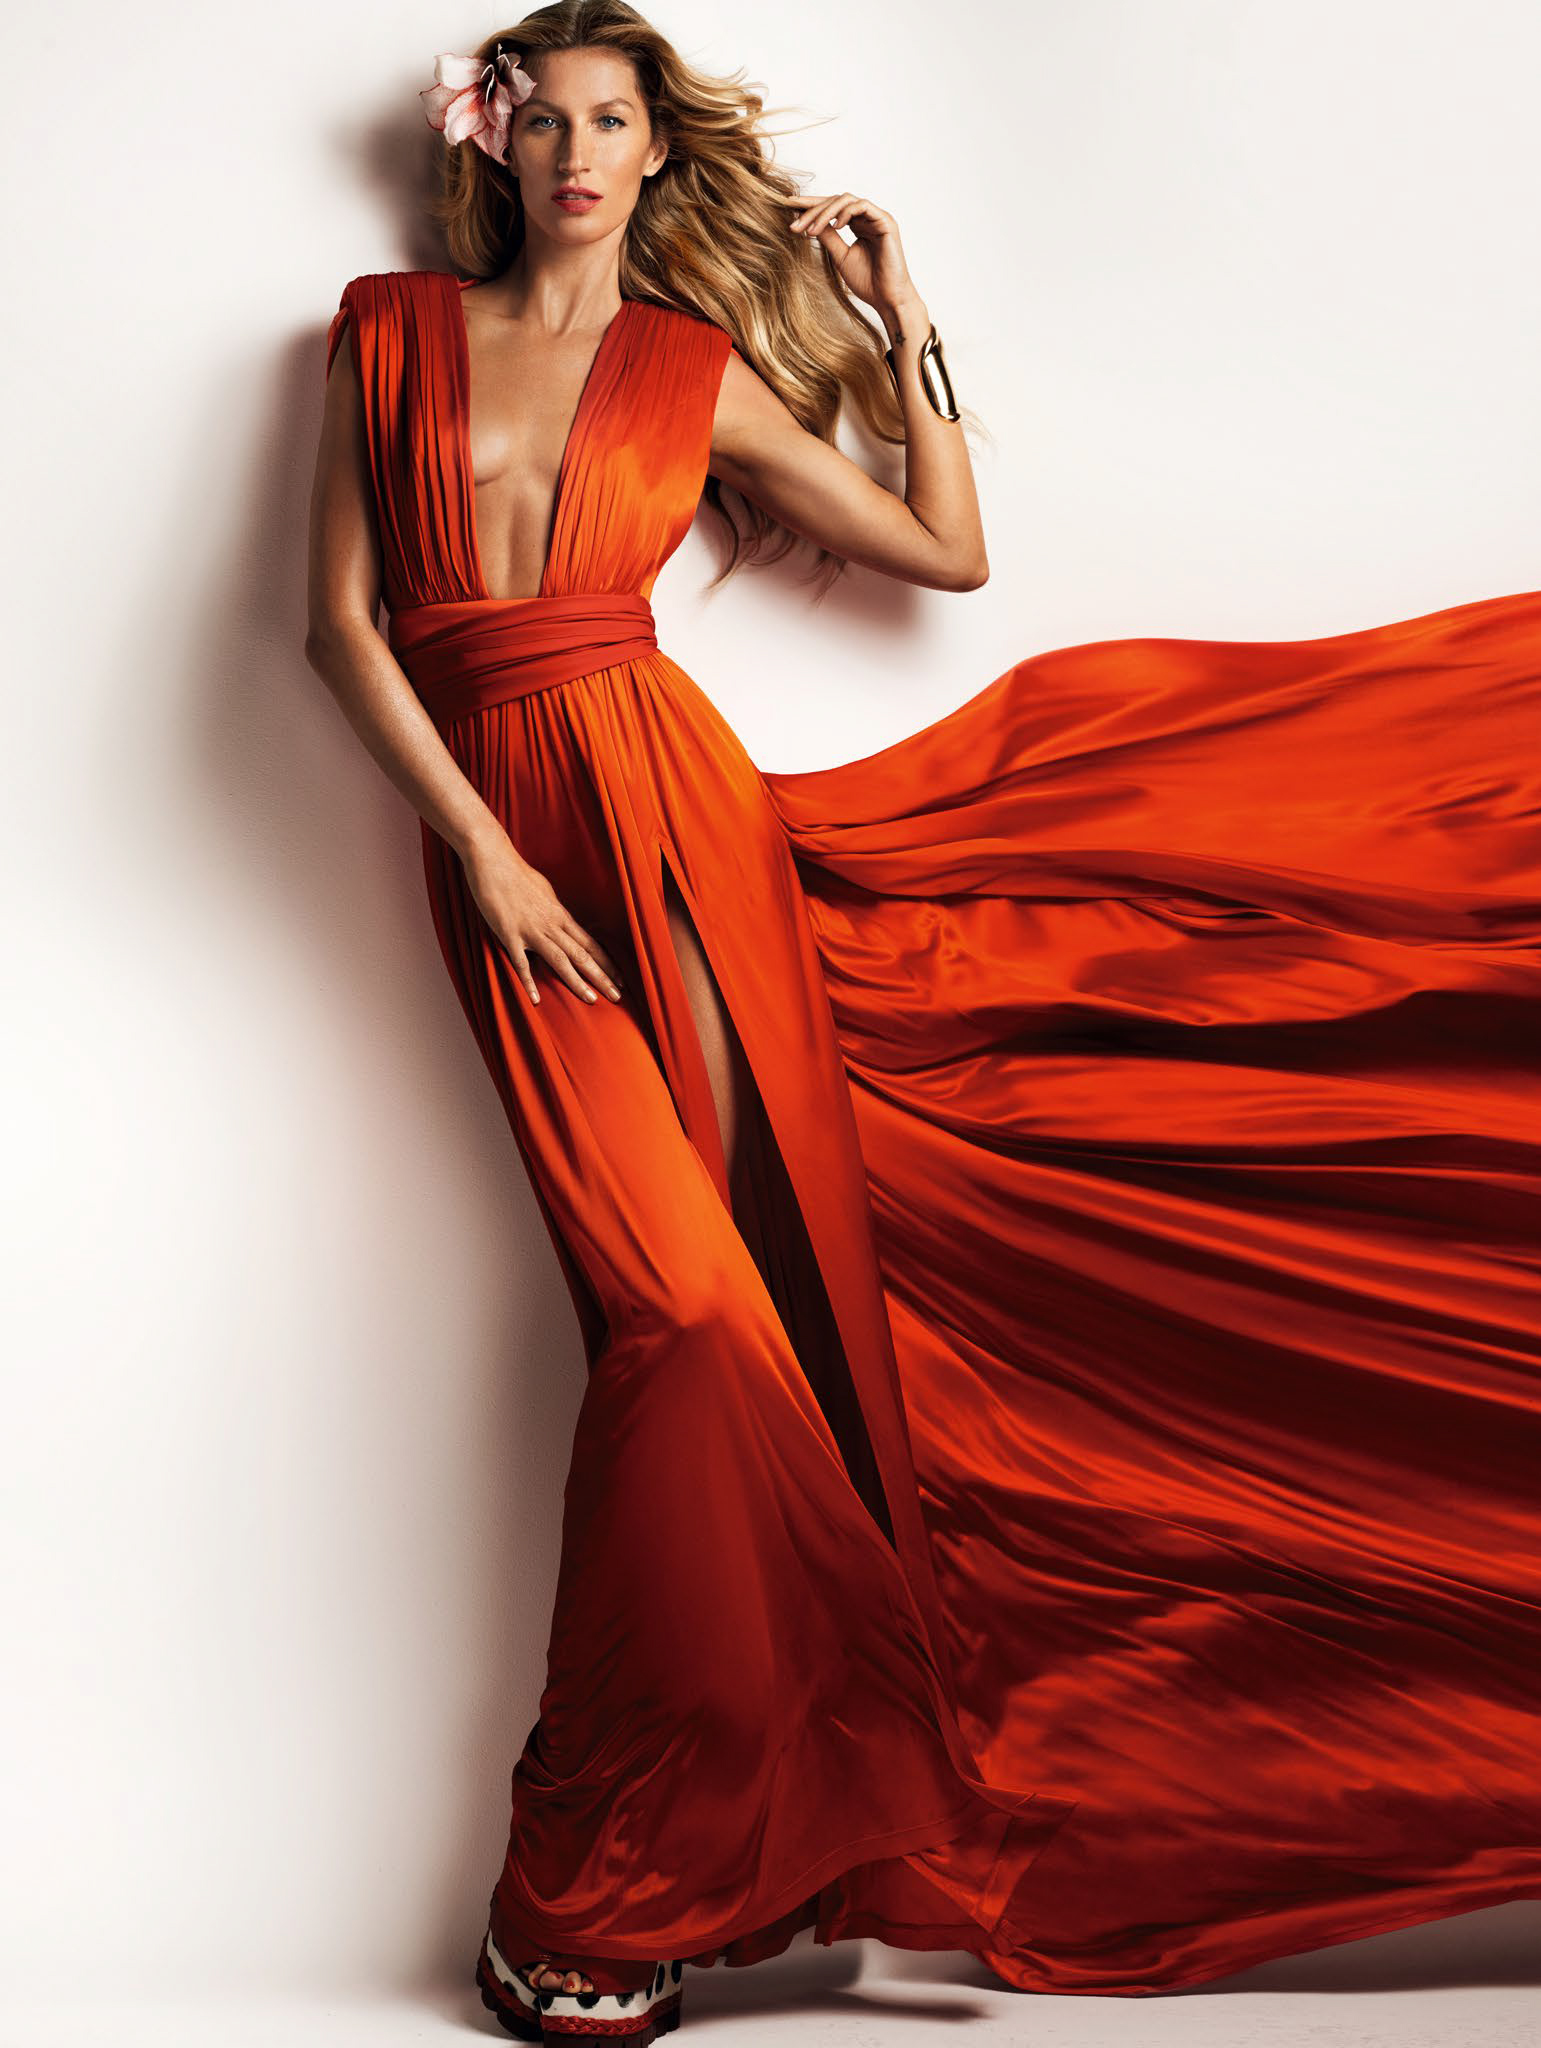 gisele-bc3bcndchen-by-mario-testino-for-vogue-china-march-2015-5